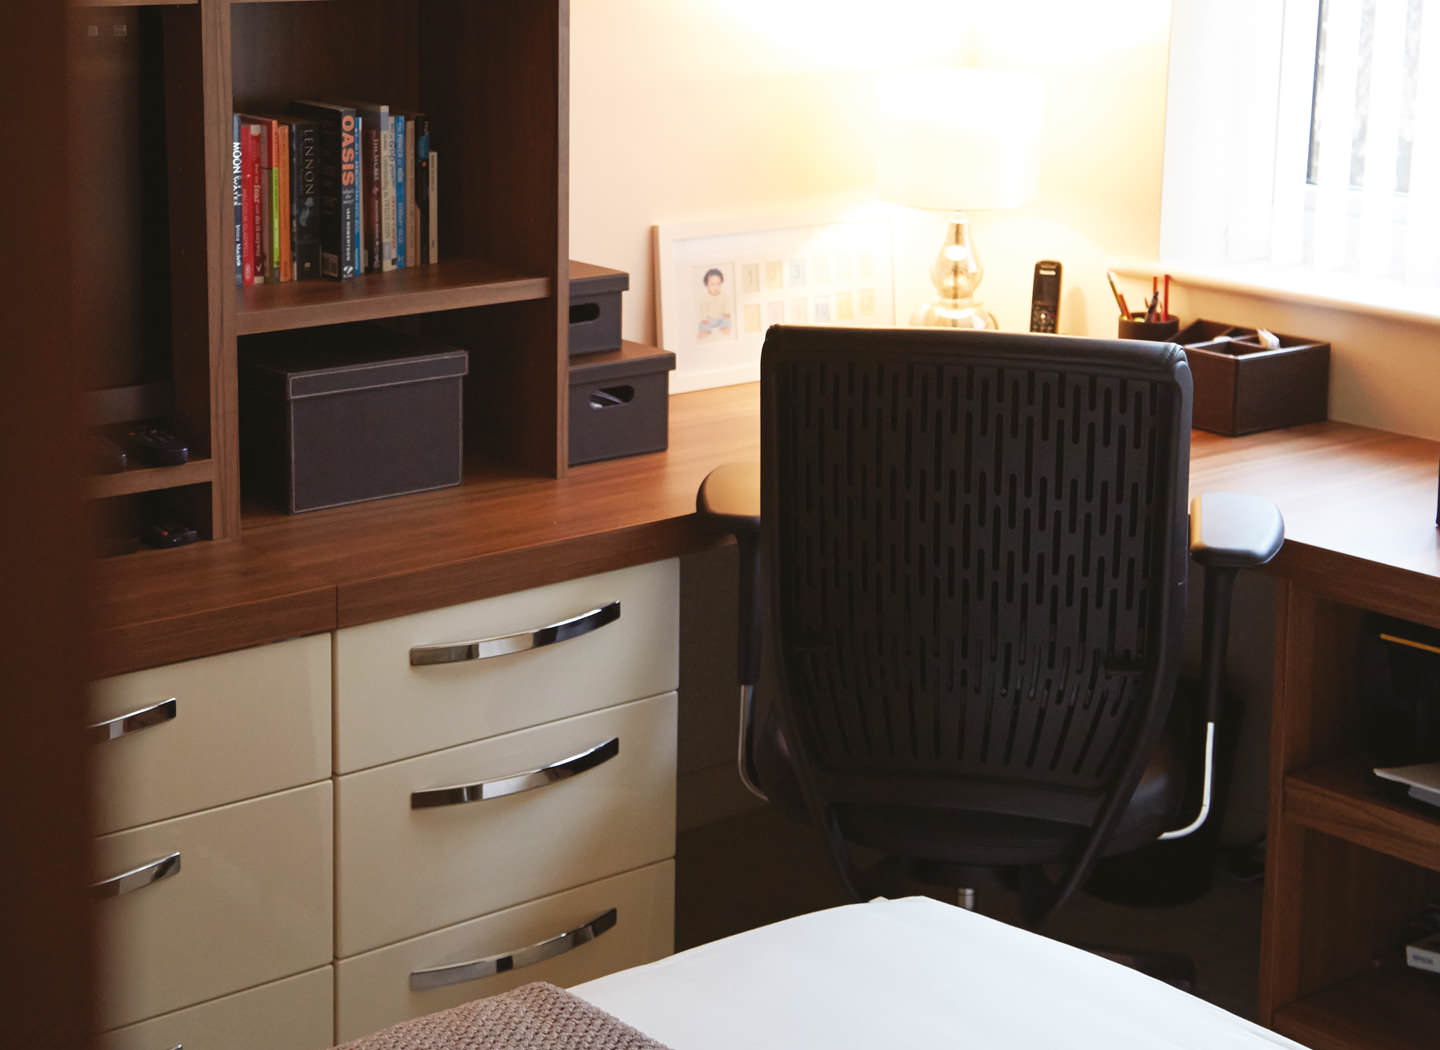 Case study showing curved fitted desk in study bedroom